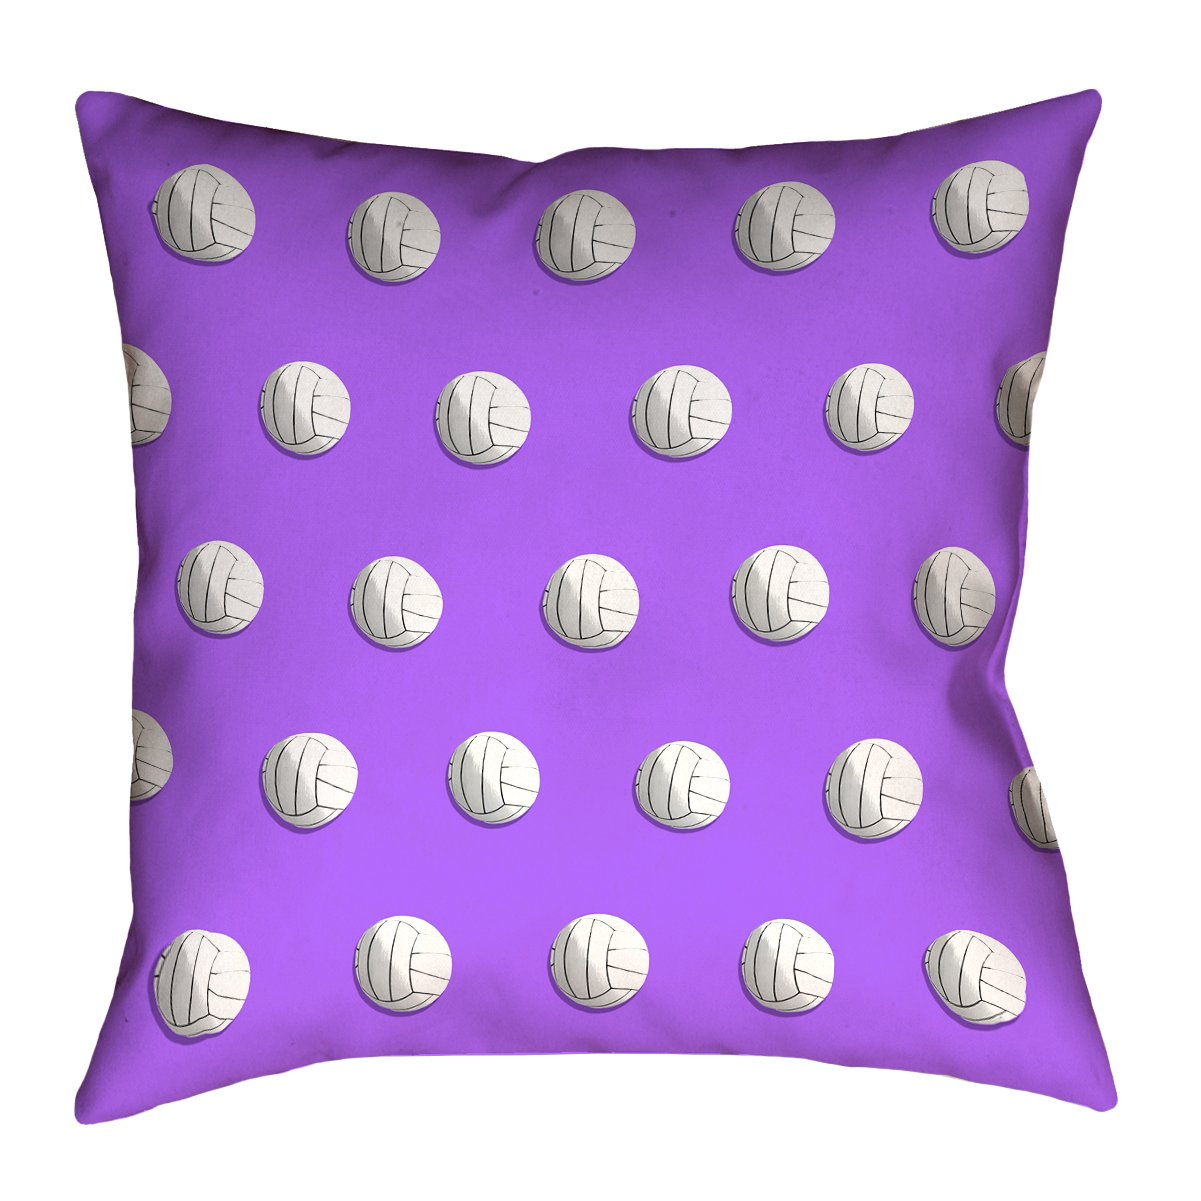 ArtVerse Katelyn Smith Purple Volleyball 36'' x 36'' Floor Pillows Double Sided Print with Concealed Zipper & Insert by ArtVerse